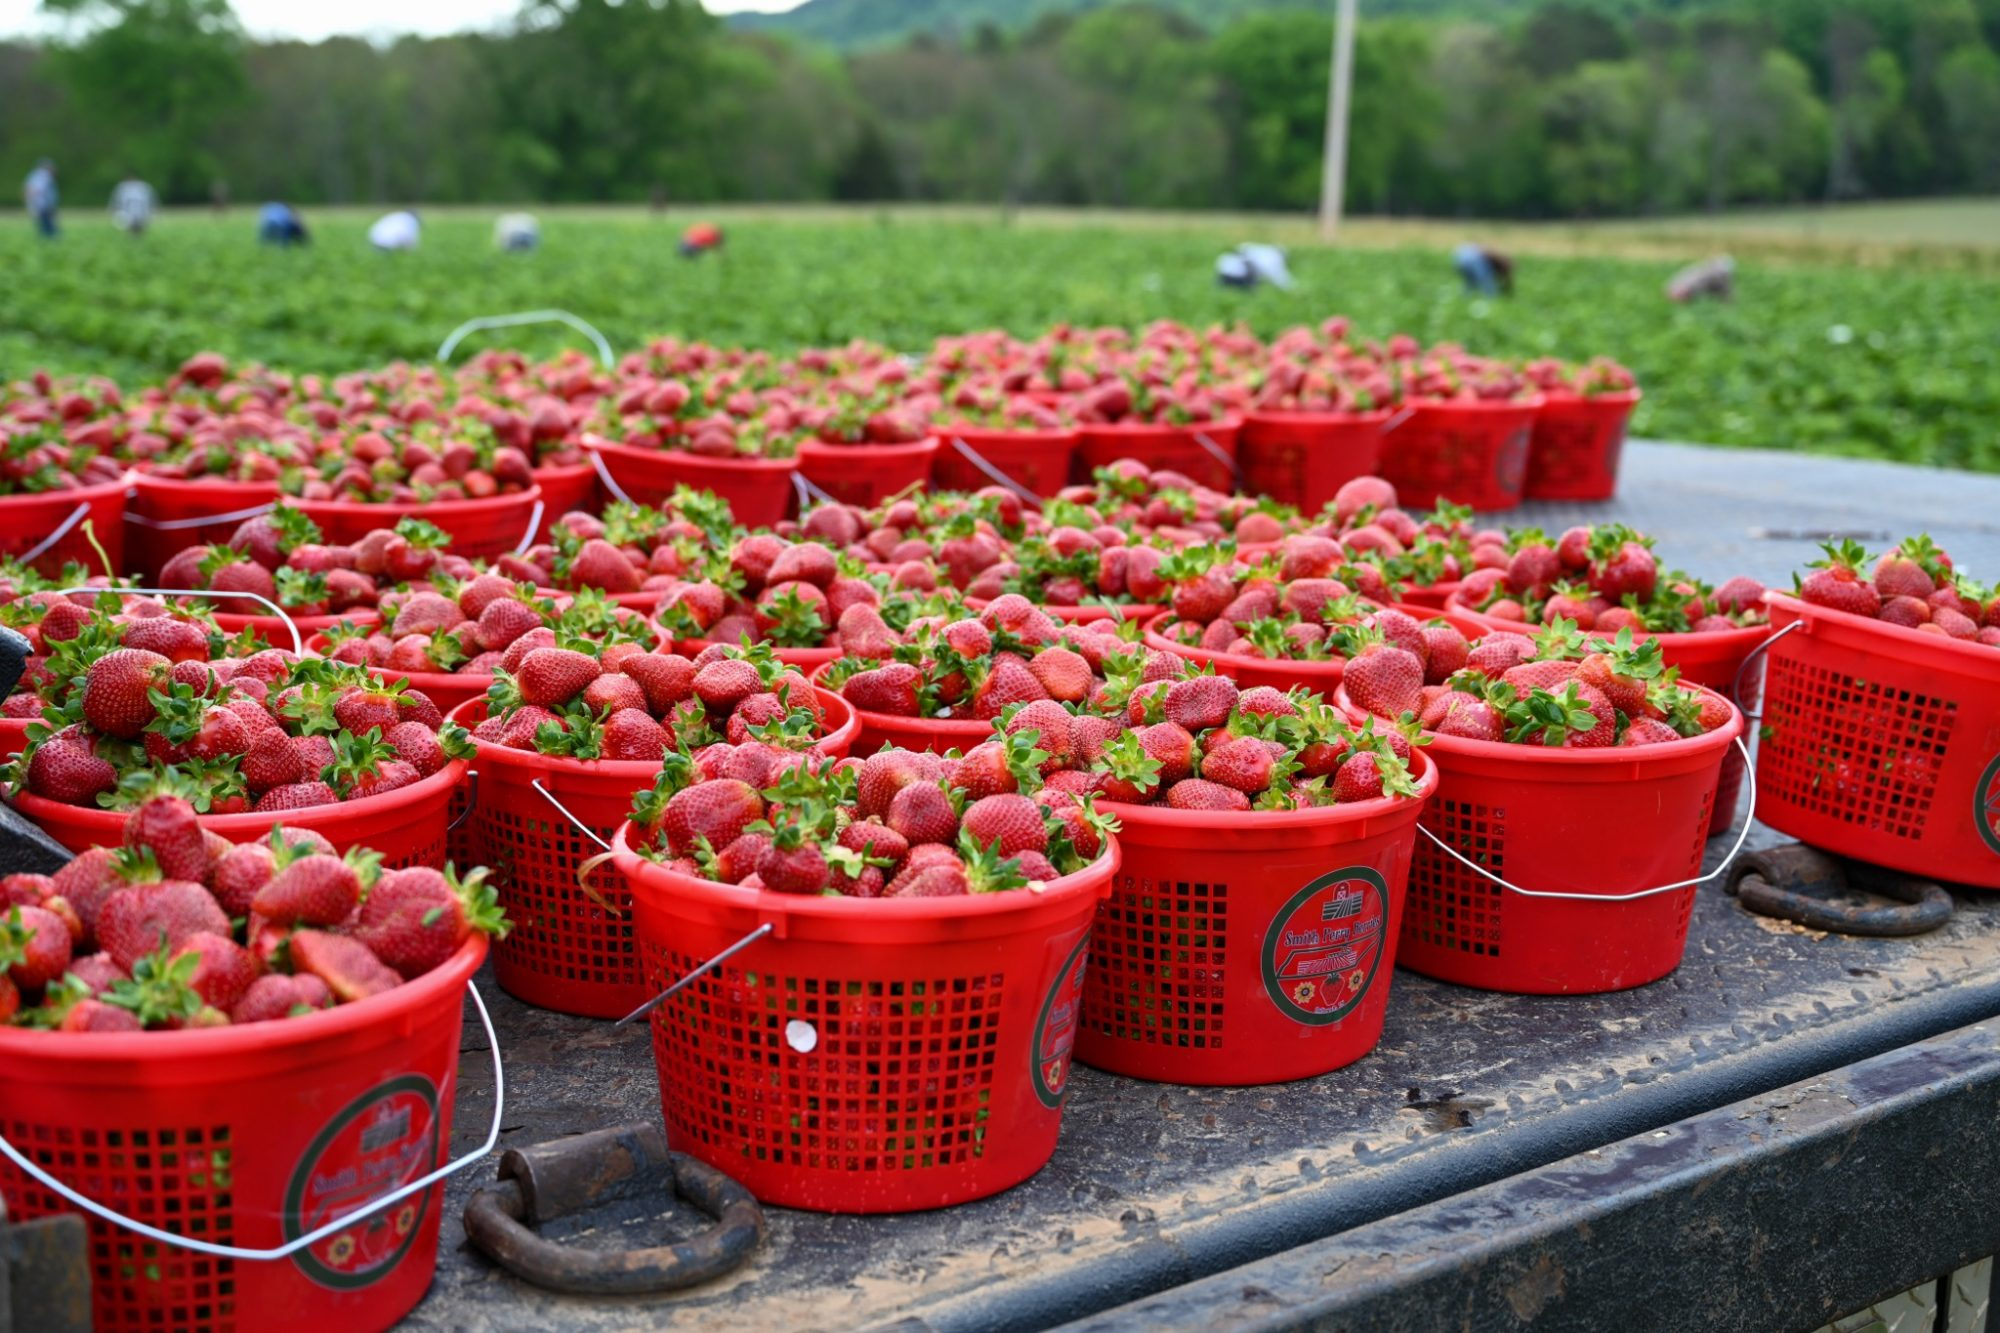 Buckets of strawberries on a truck bed in a field